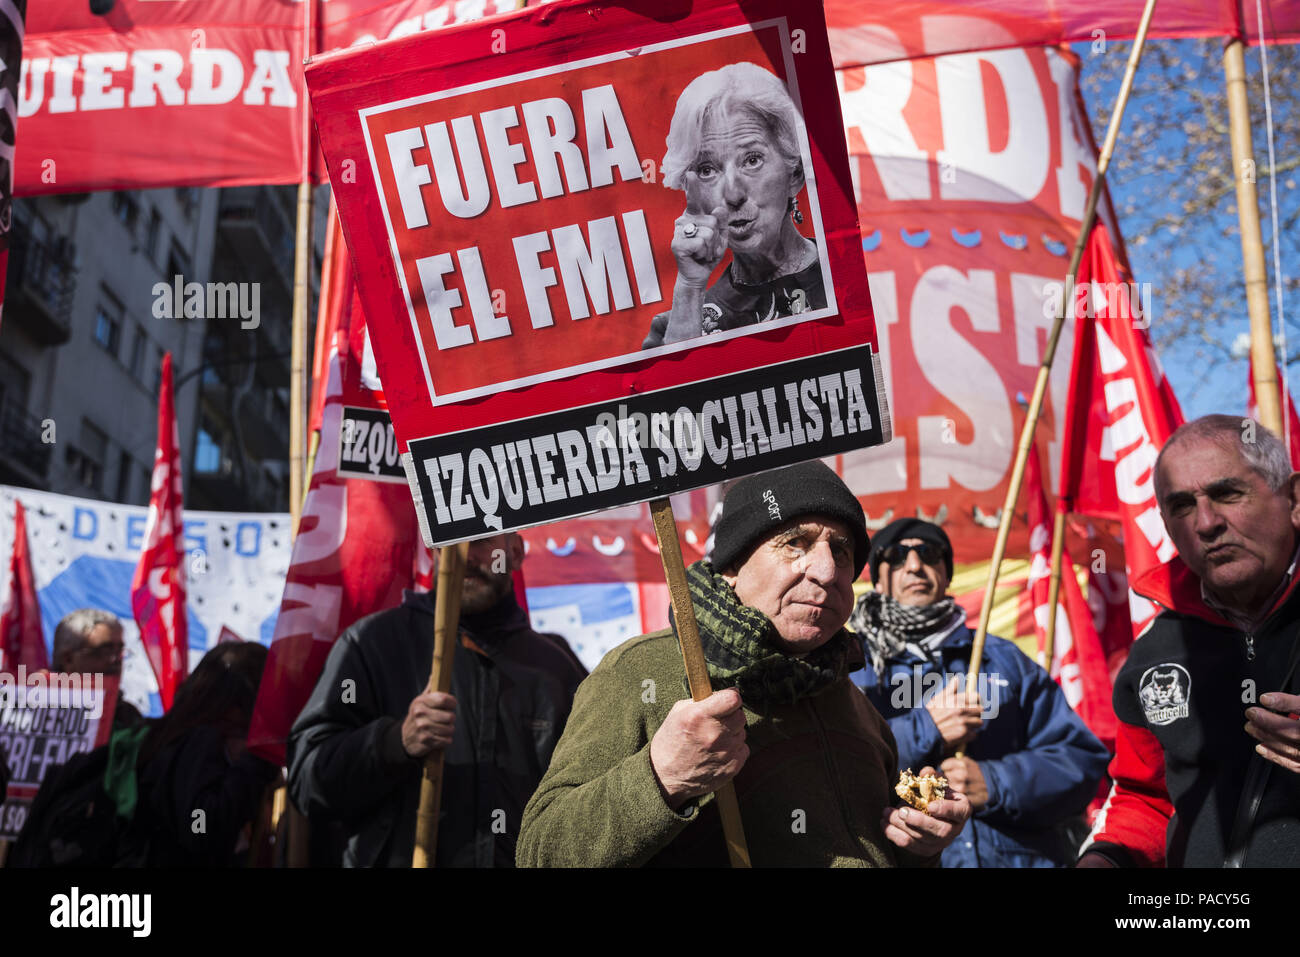 Buenos Aires, Argentina. 21st July, 2018. Social and political organization protest against the G-20 and the director of IMF (International Monetary Fund) meeting in Buenos Aires. Credit: Julieta Ferrario/ZUMA Wire/Alamy Live News Stock Photo